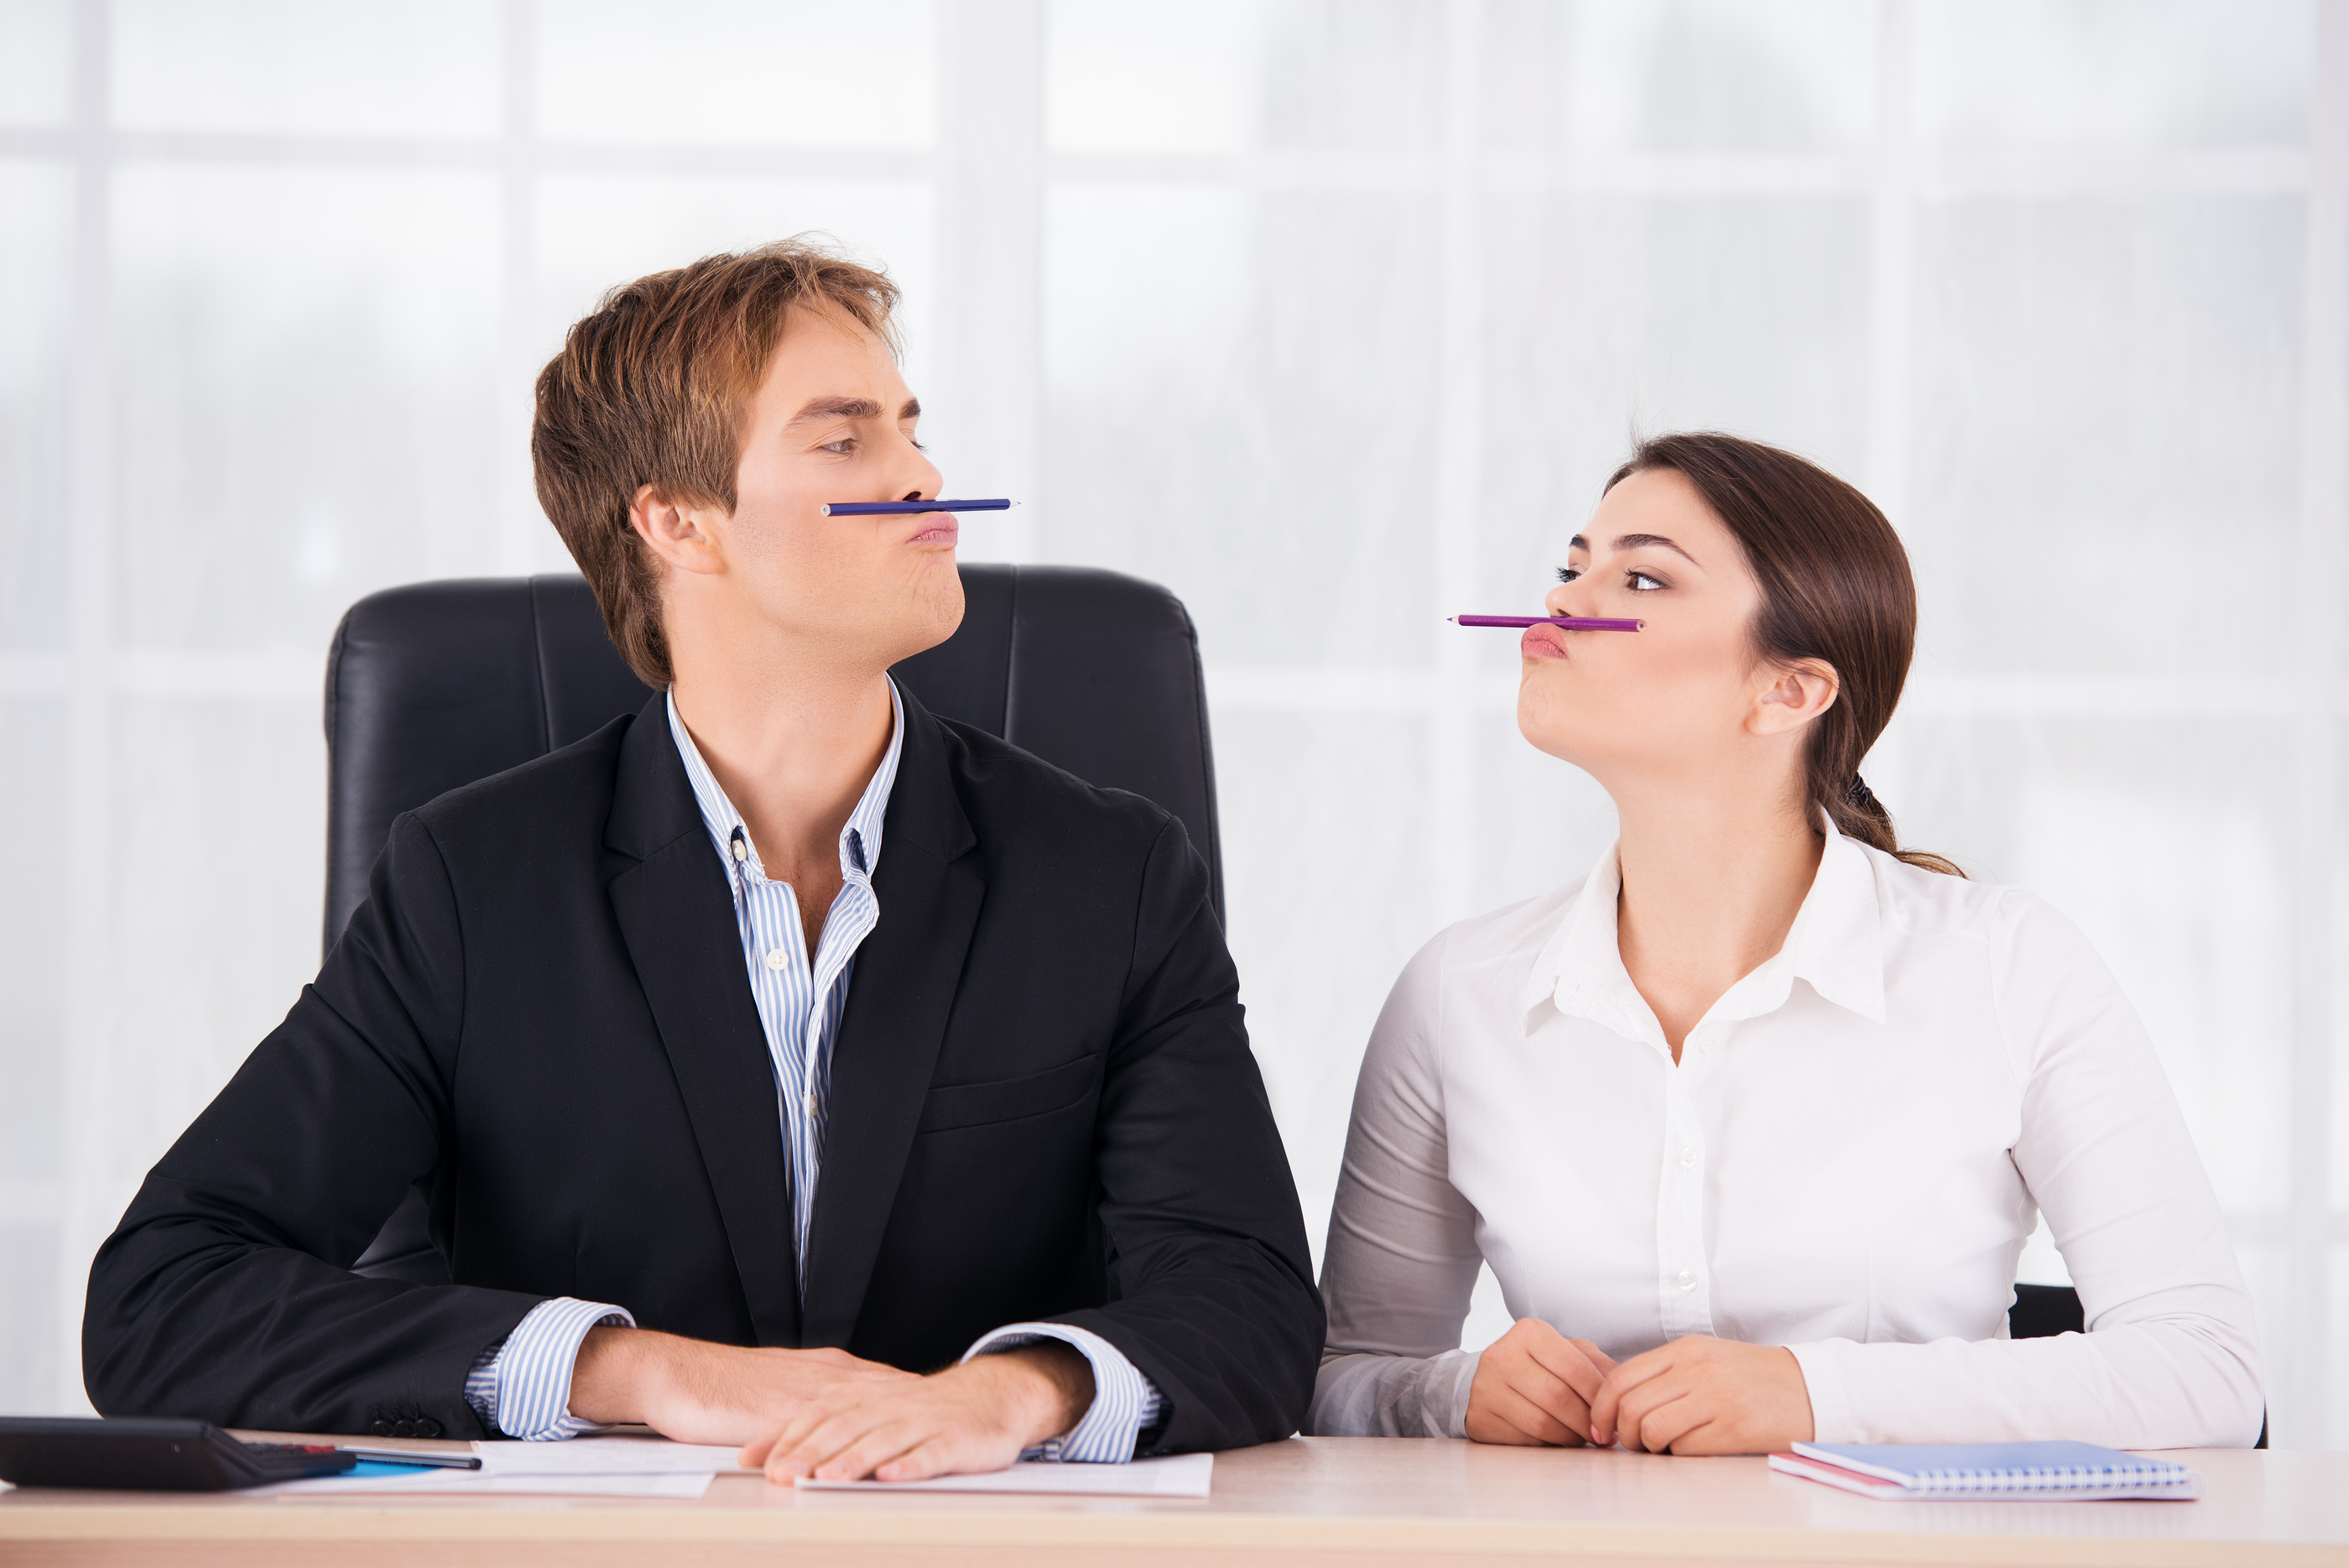 Business woman and man having fun in office